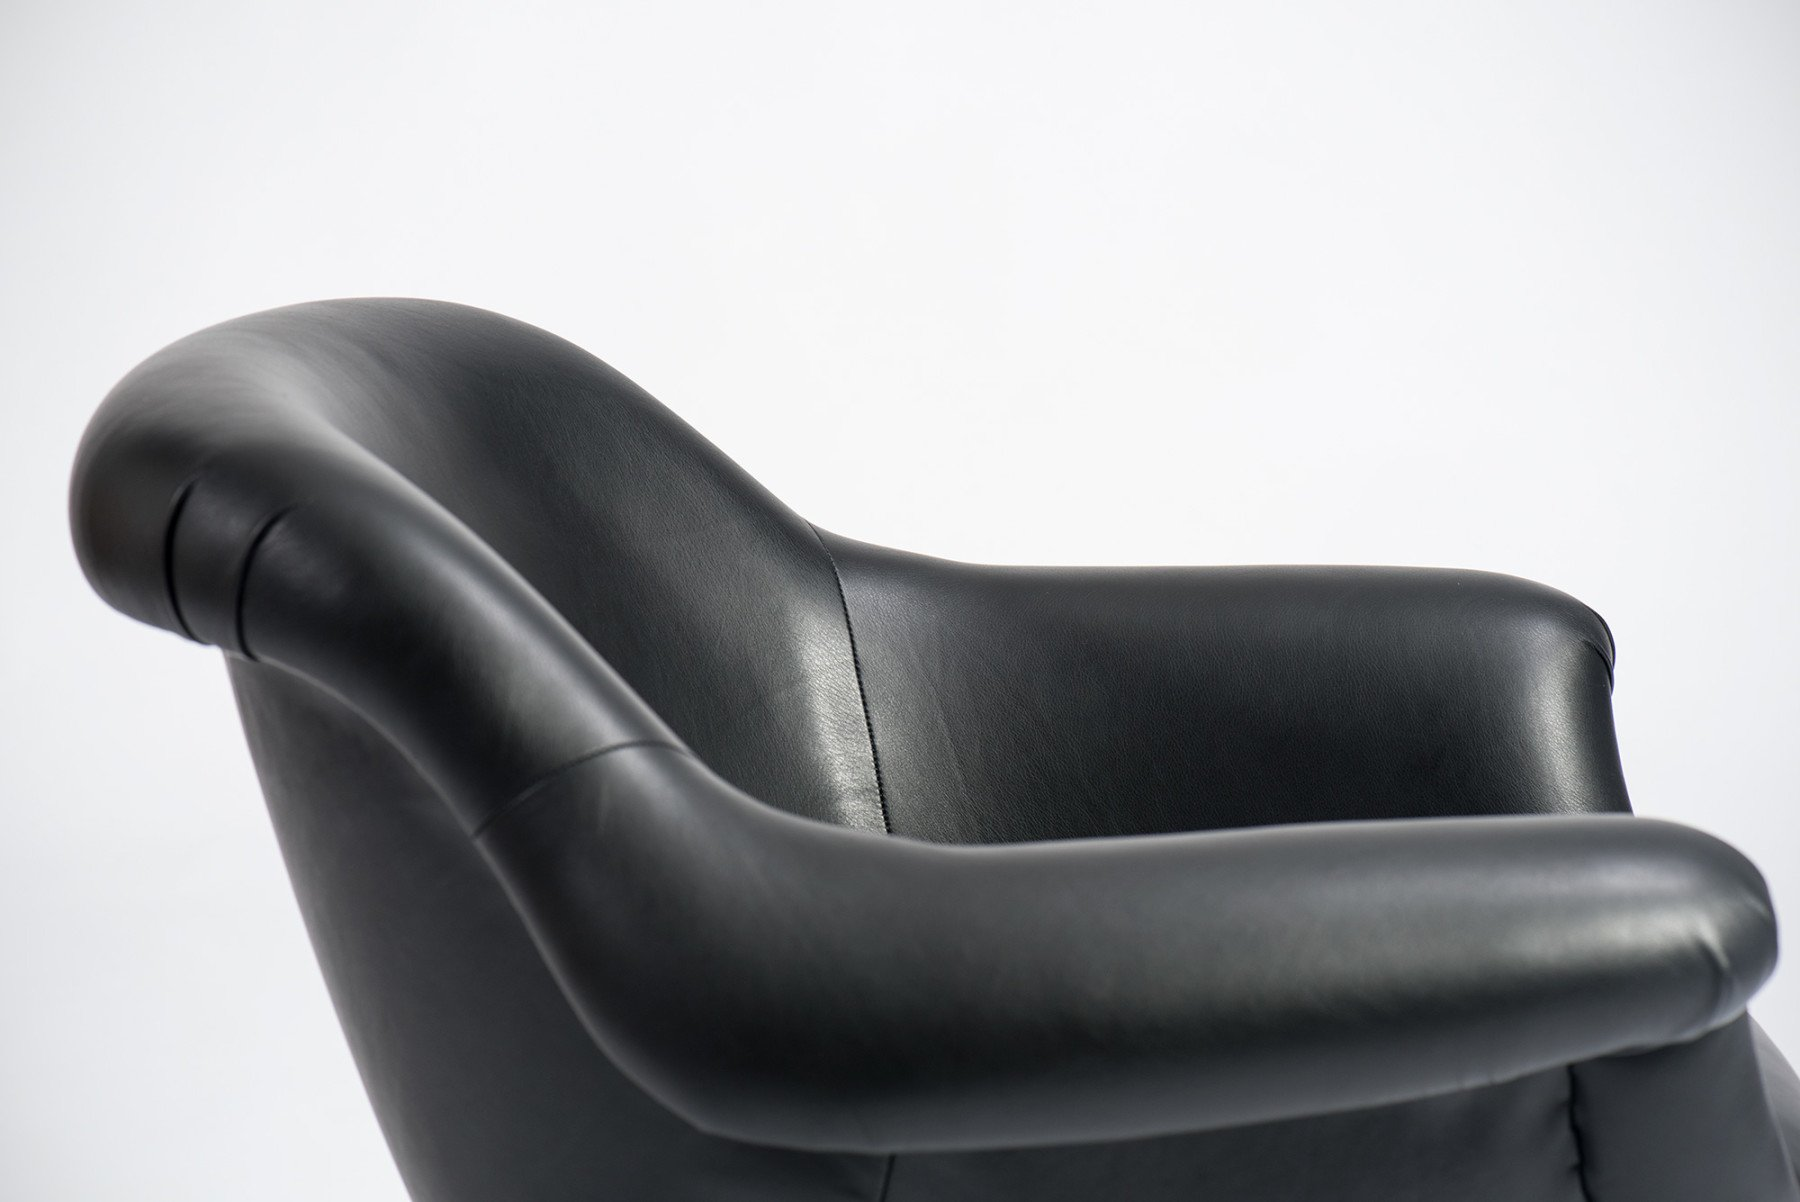 Angelo Mangiarotti |  Lounge chair, model 1110